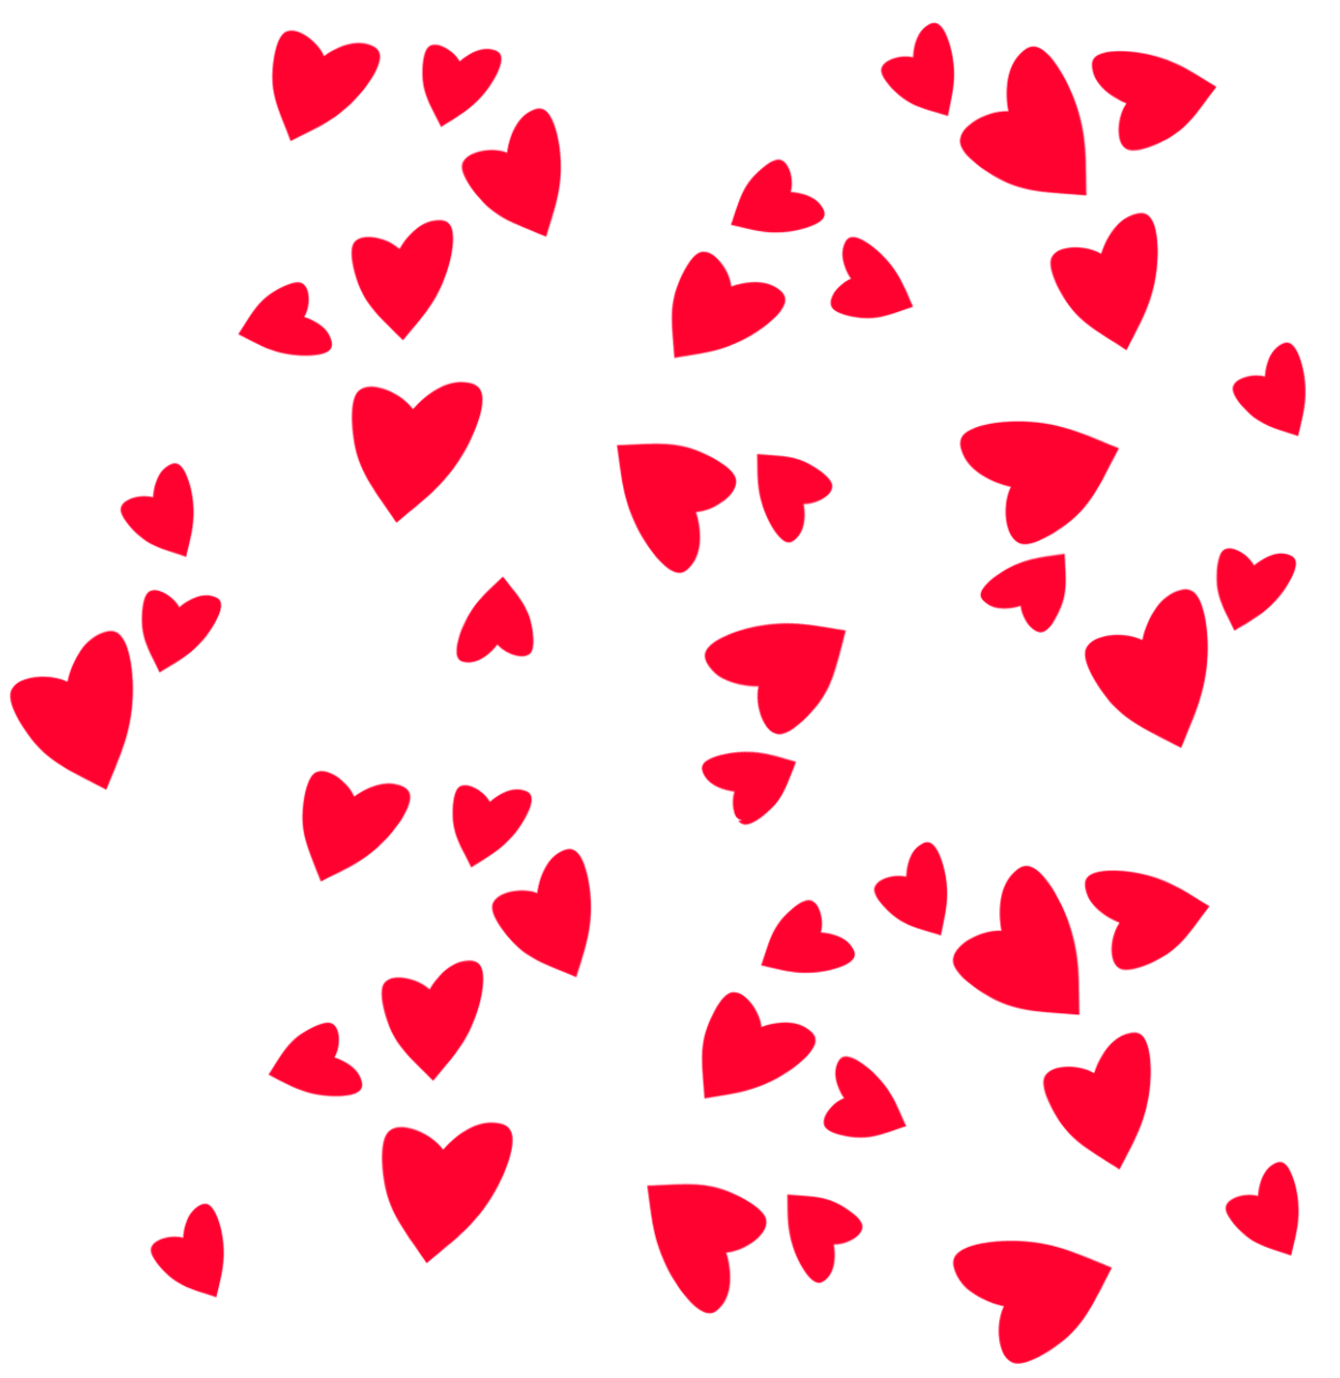 Heart pattern clipart svg black and white library Valentines Day PNG Hearts Decor Clipart Picture | Gallery ... svg black and white library